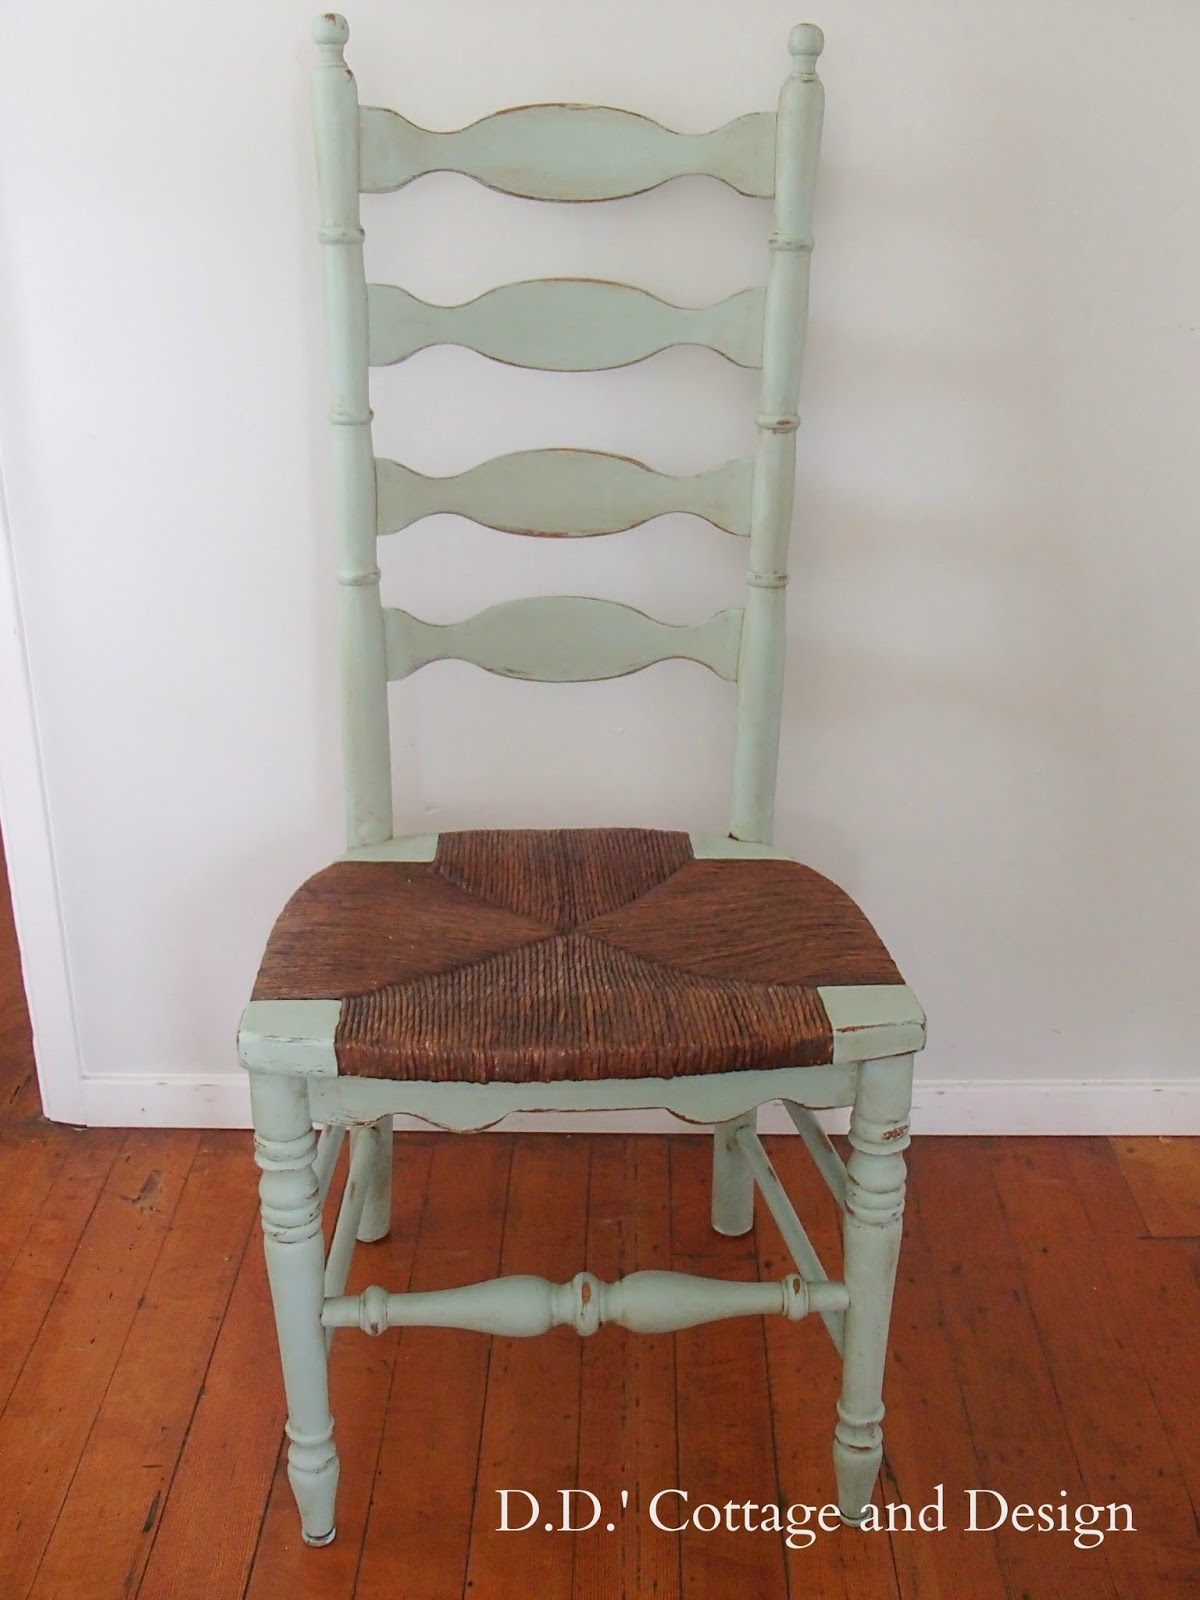 D D S Cottage And Design 4 Ladder Back Chairs With Rush